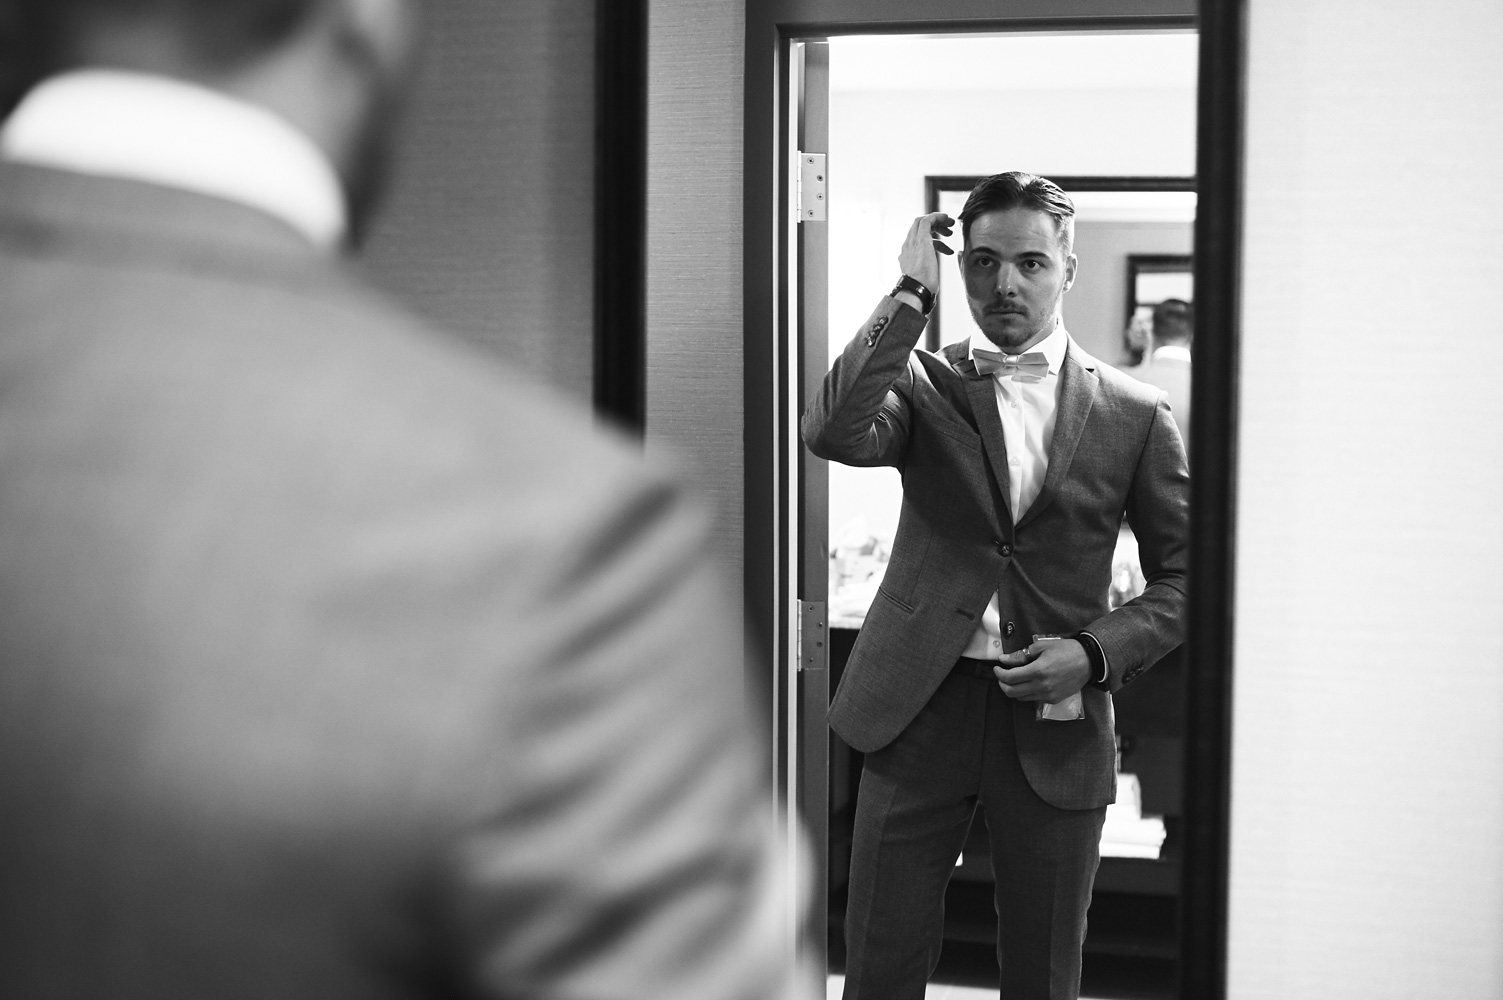 black-and-white-portrait-of-the-groom-looking-at-his-reflection.jpg